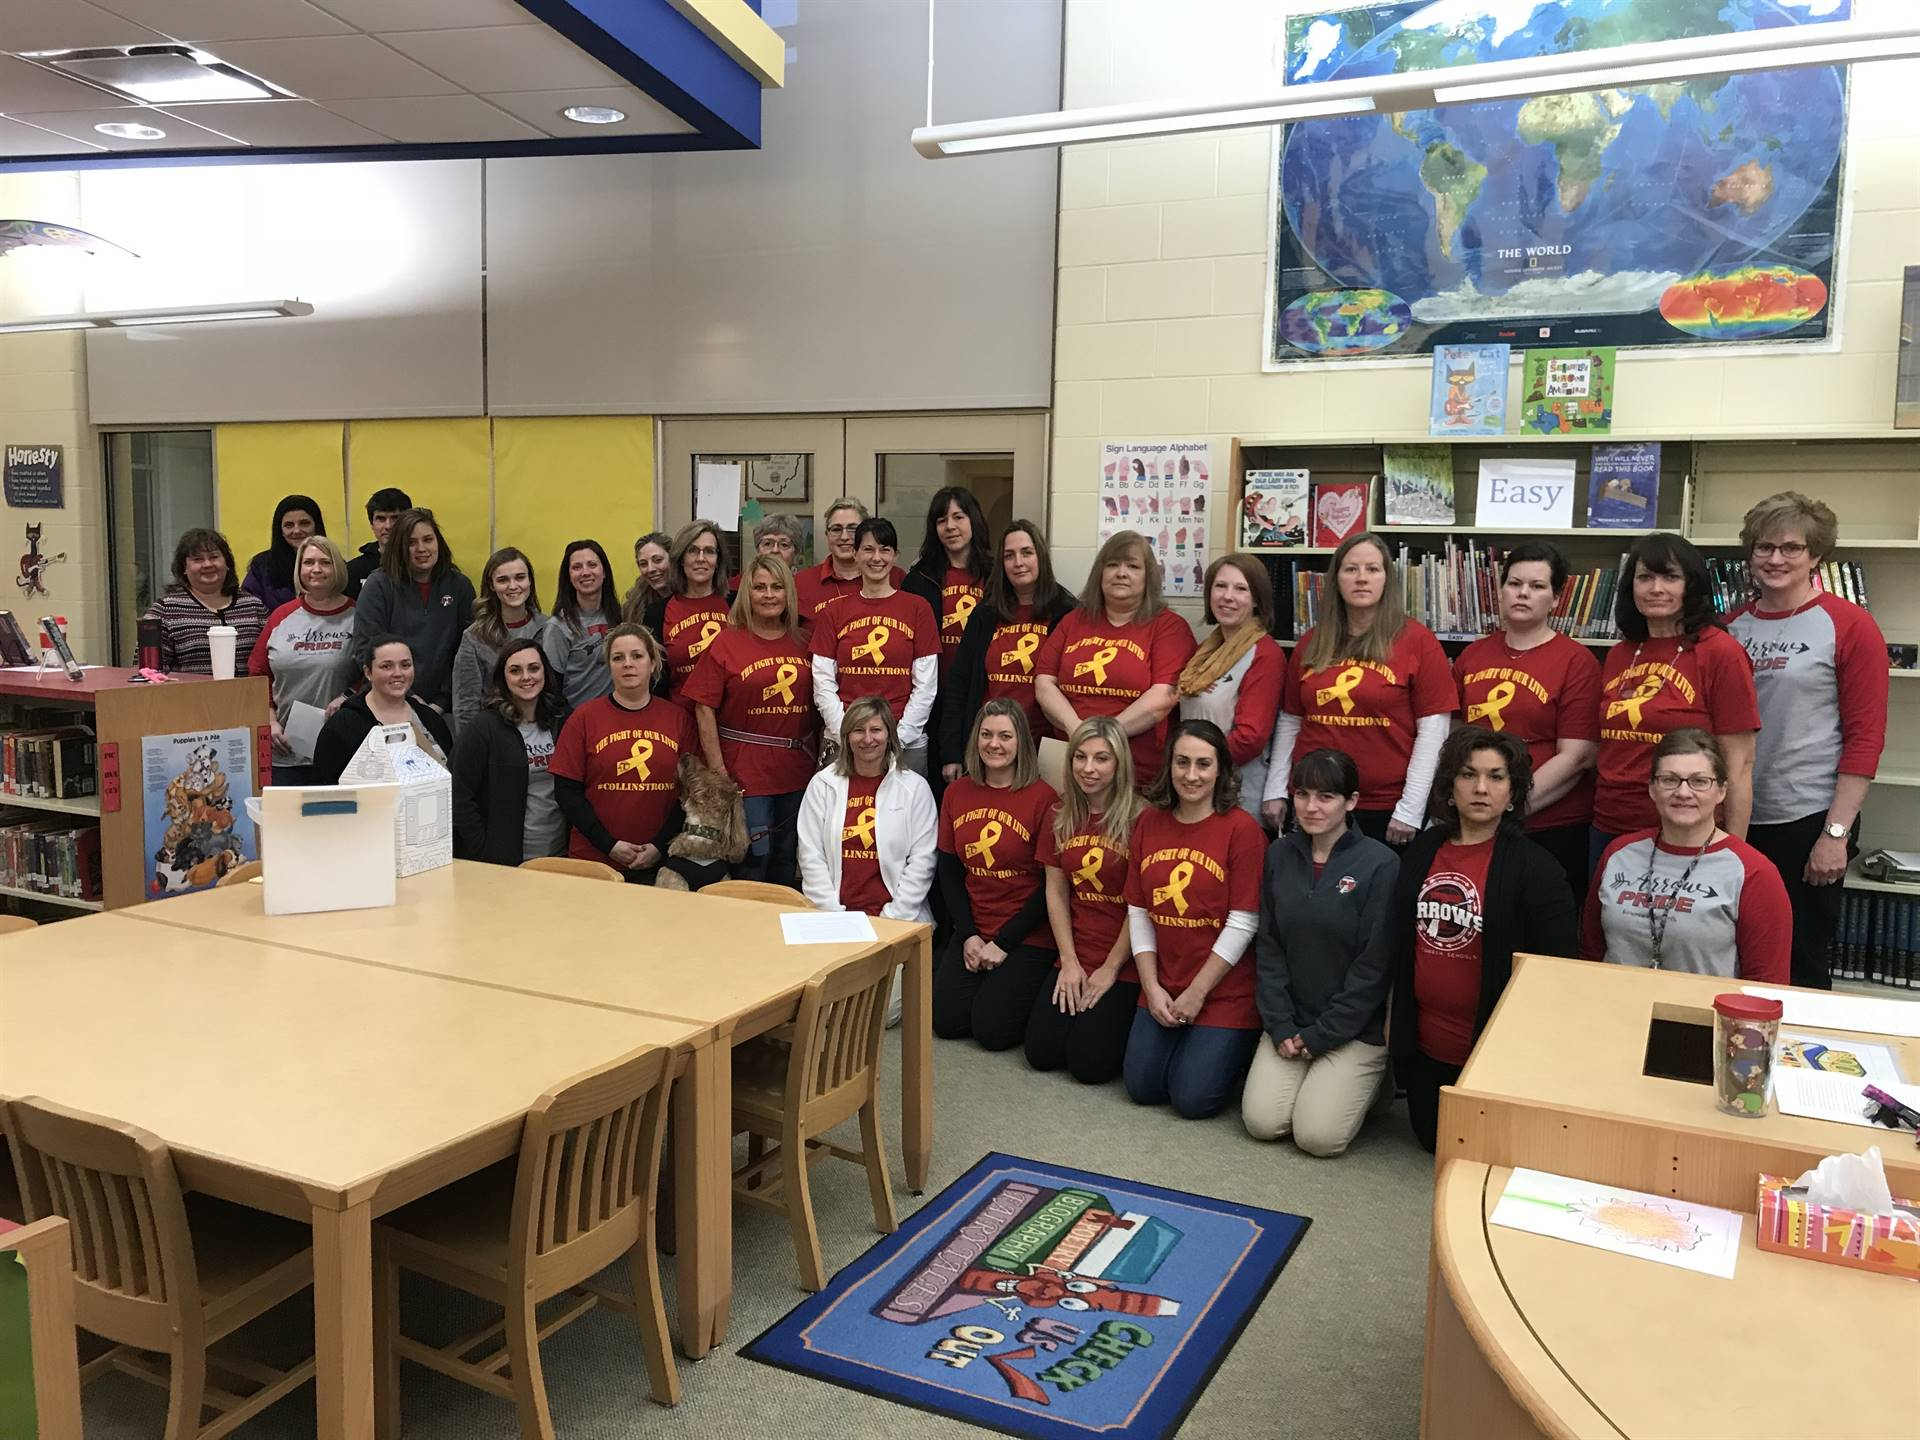 teachers wearing Collin Strong t-shirts in support of Collin Griffin